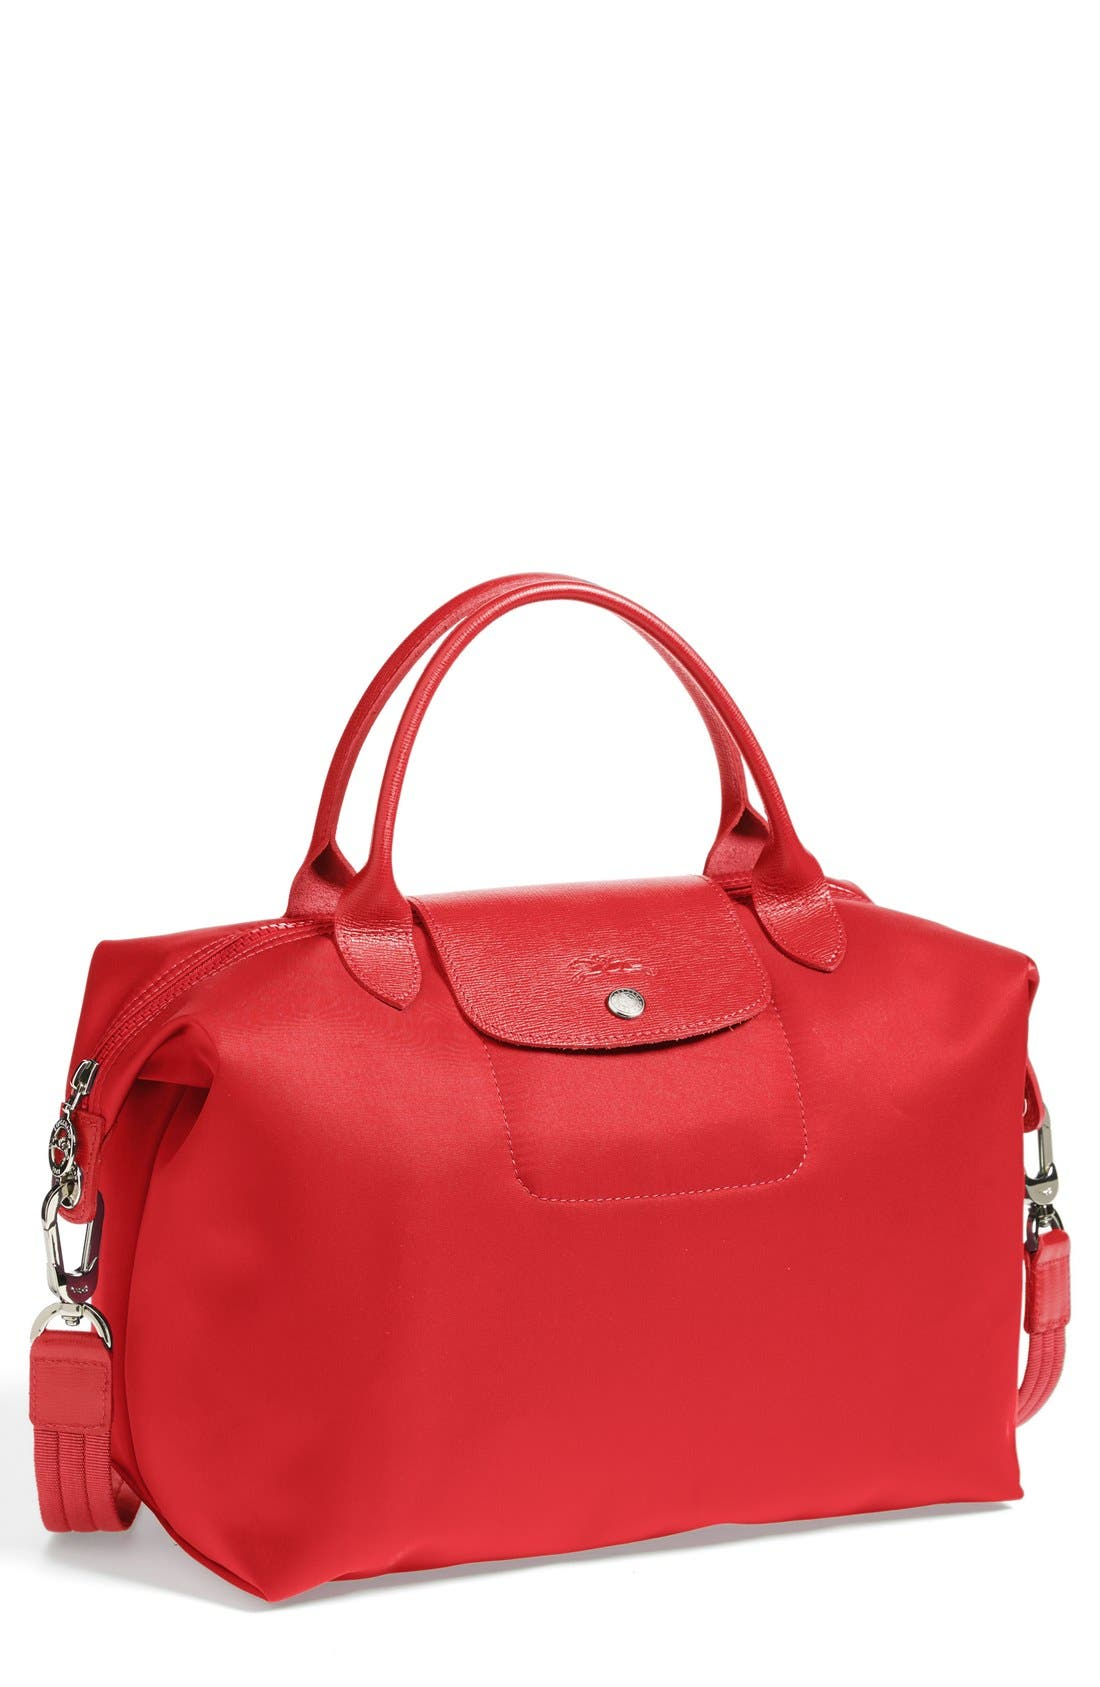 Alternate Image 1 Selected - Longchamp 'Le Pliage Neo - Medium' Tote